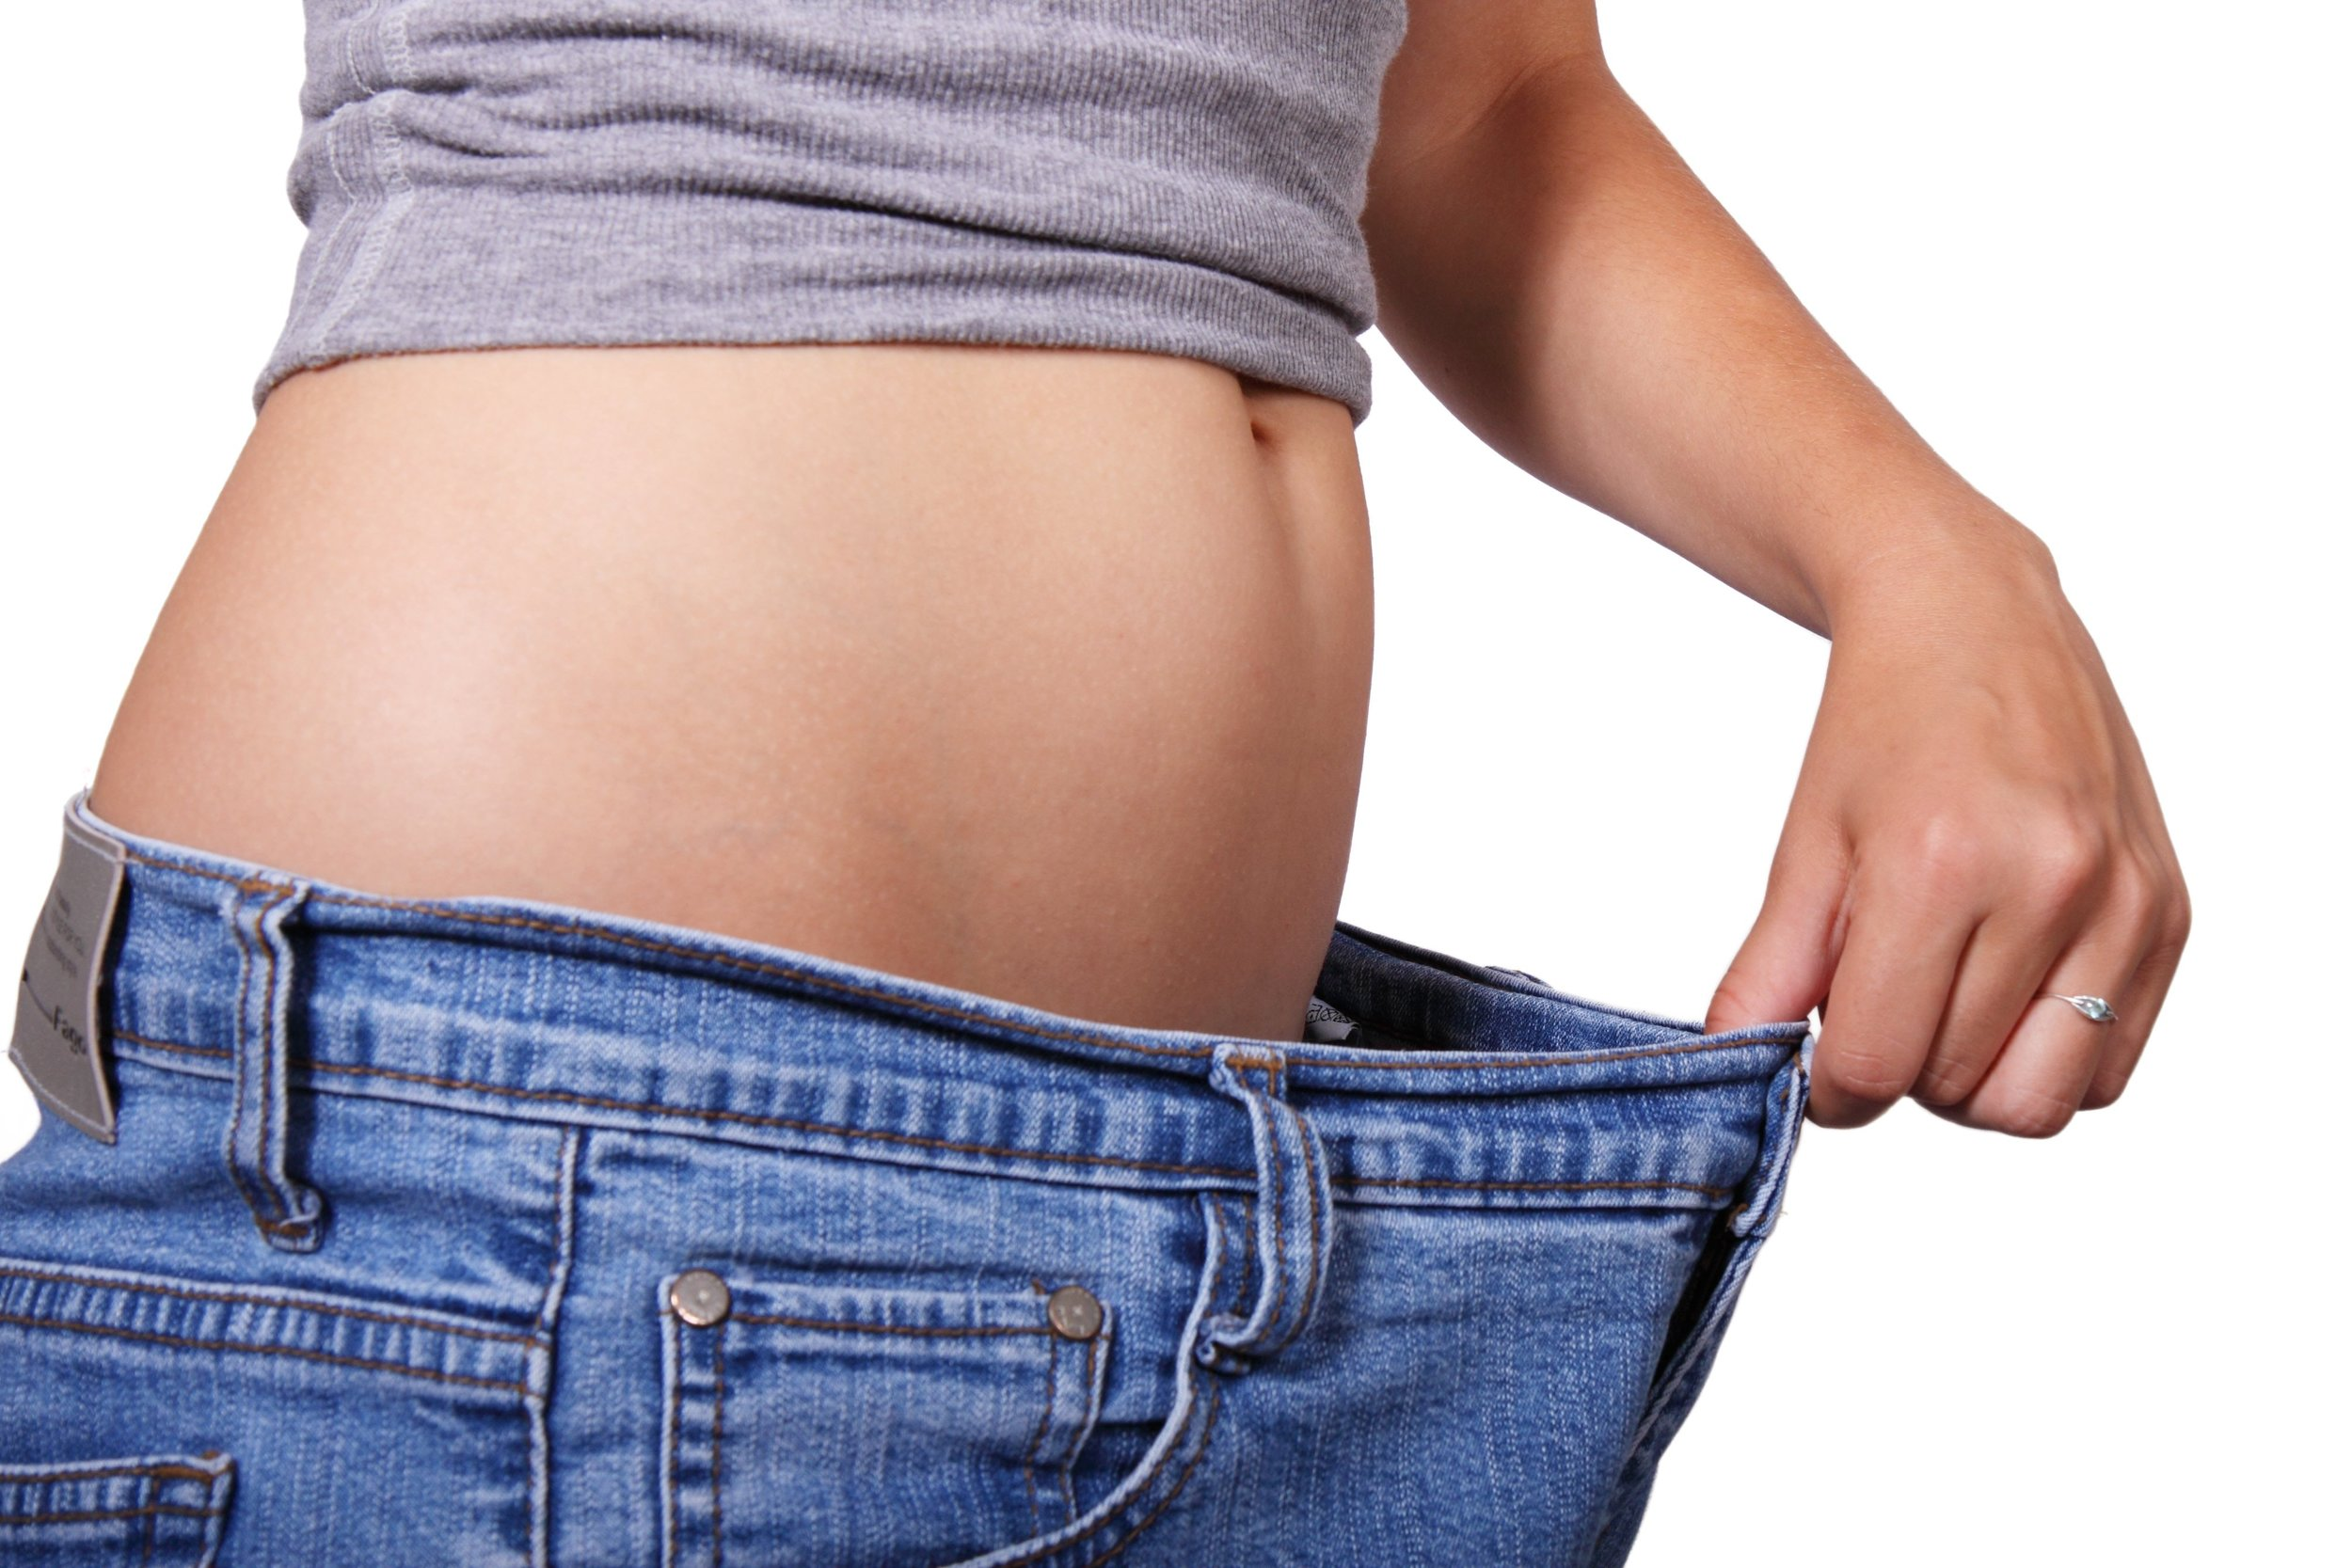 MEDICAL WEIGHT LOSS - MD GUIDED AND SUPERVISED